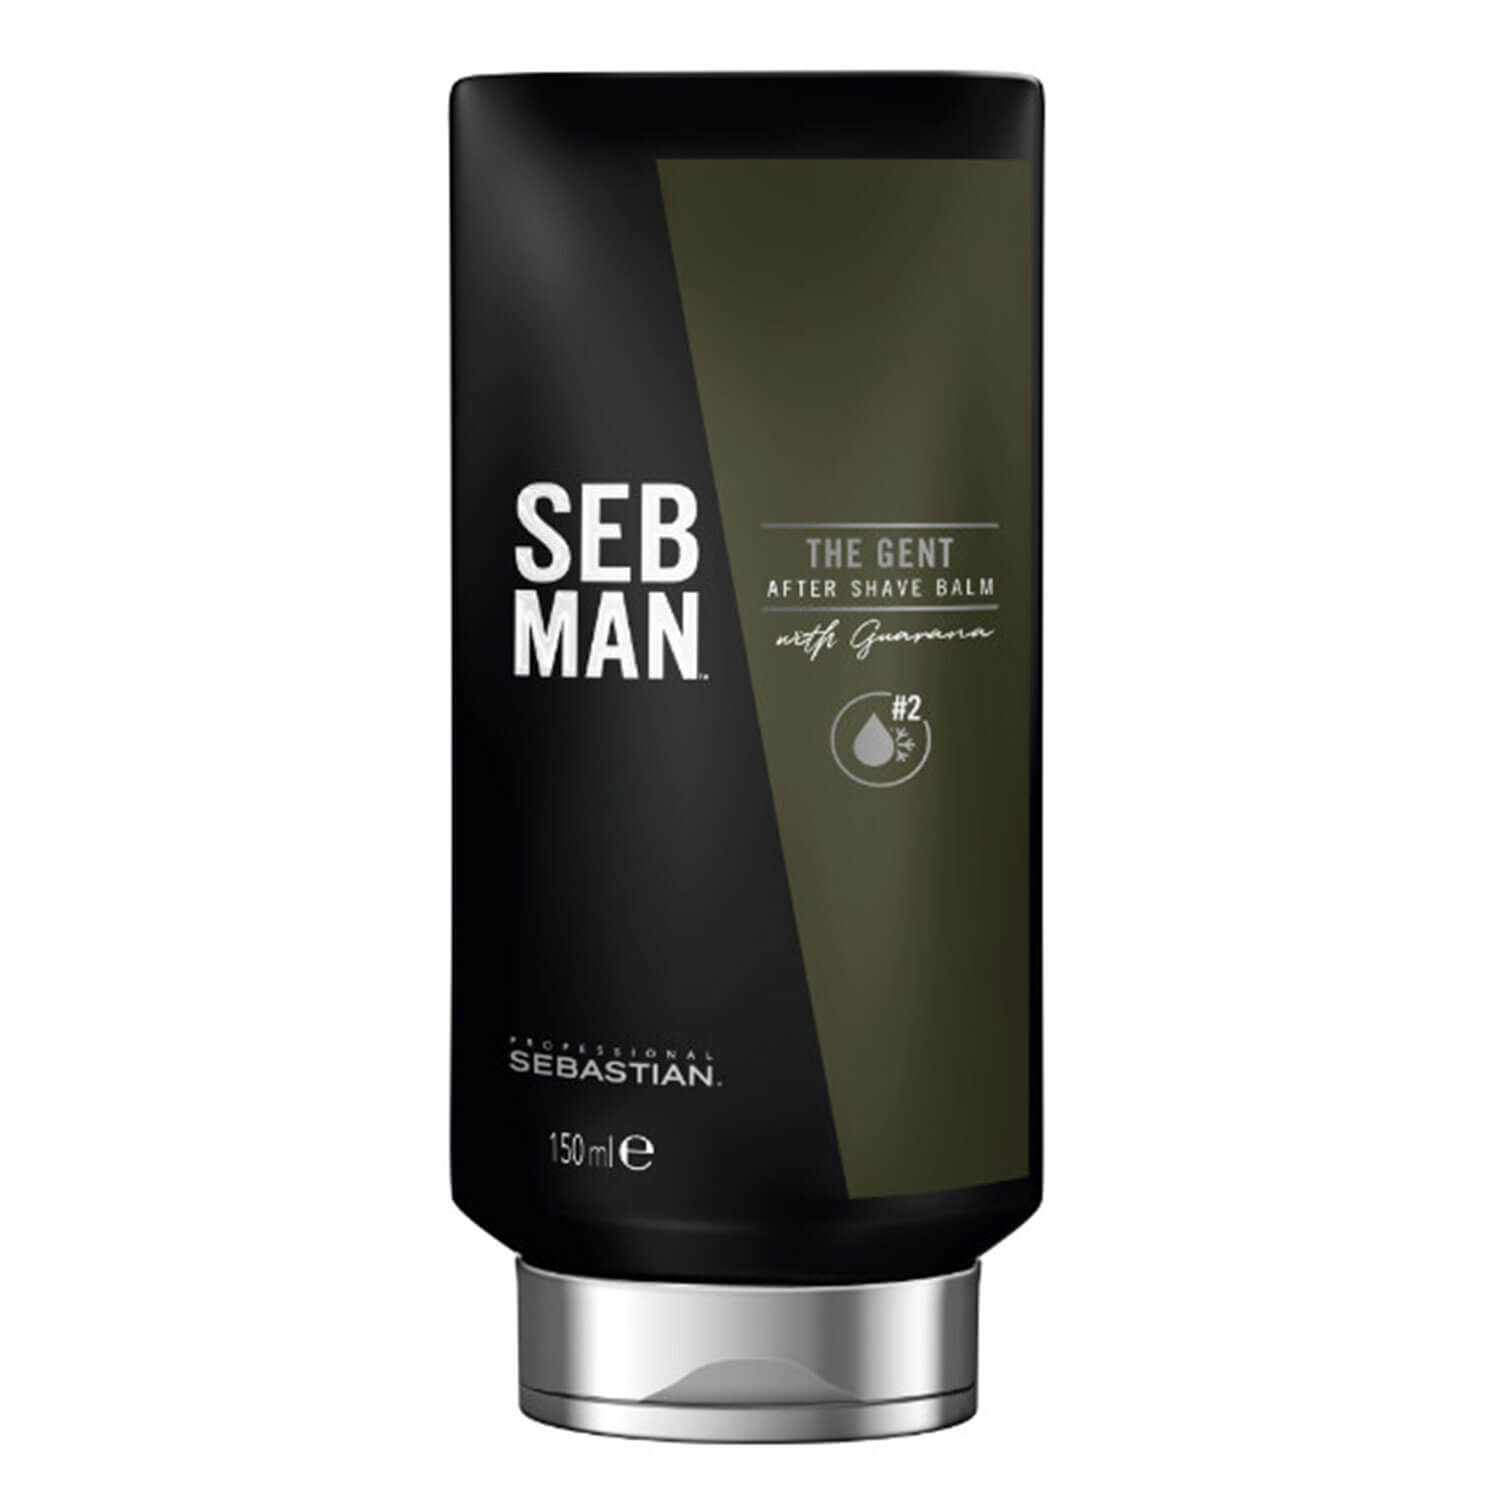 SEB MAN - The Gent After Shave Balm